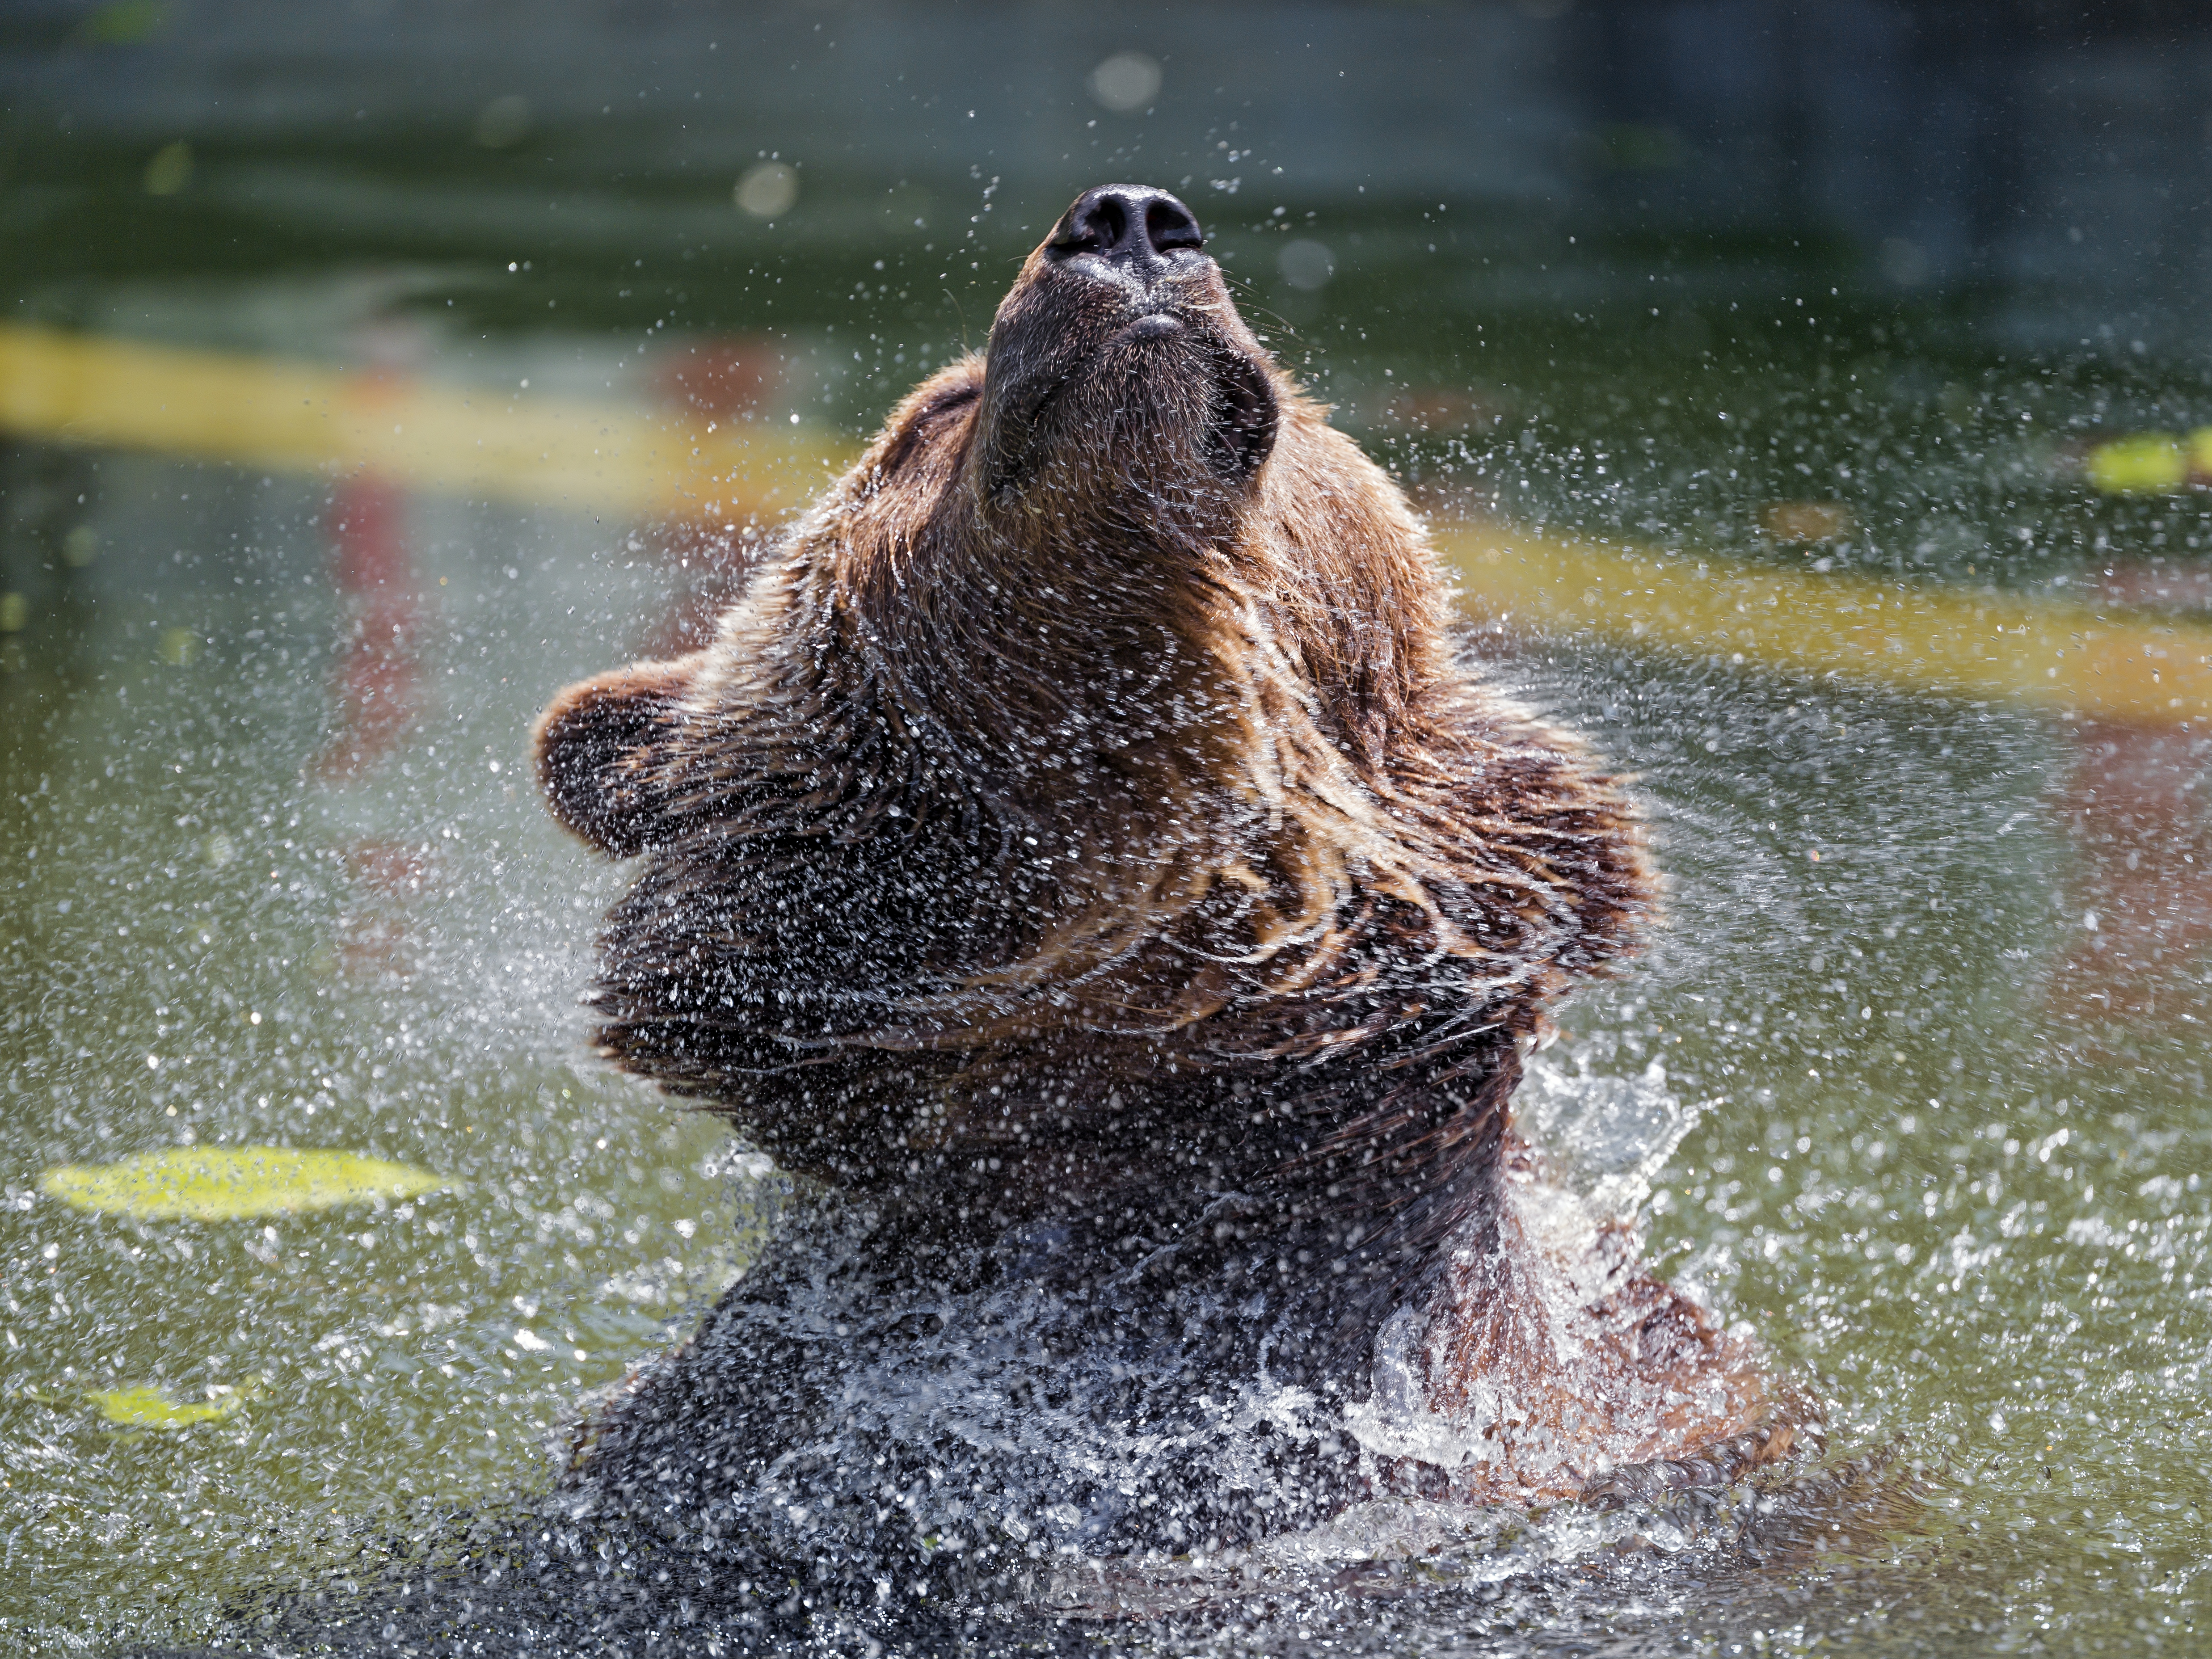 61085 download wallpaper Animals, Bear, Water, Spray, Animal, Wildlife screensavers and pictures for free